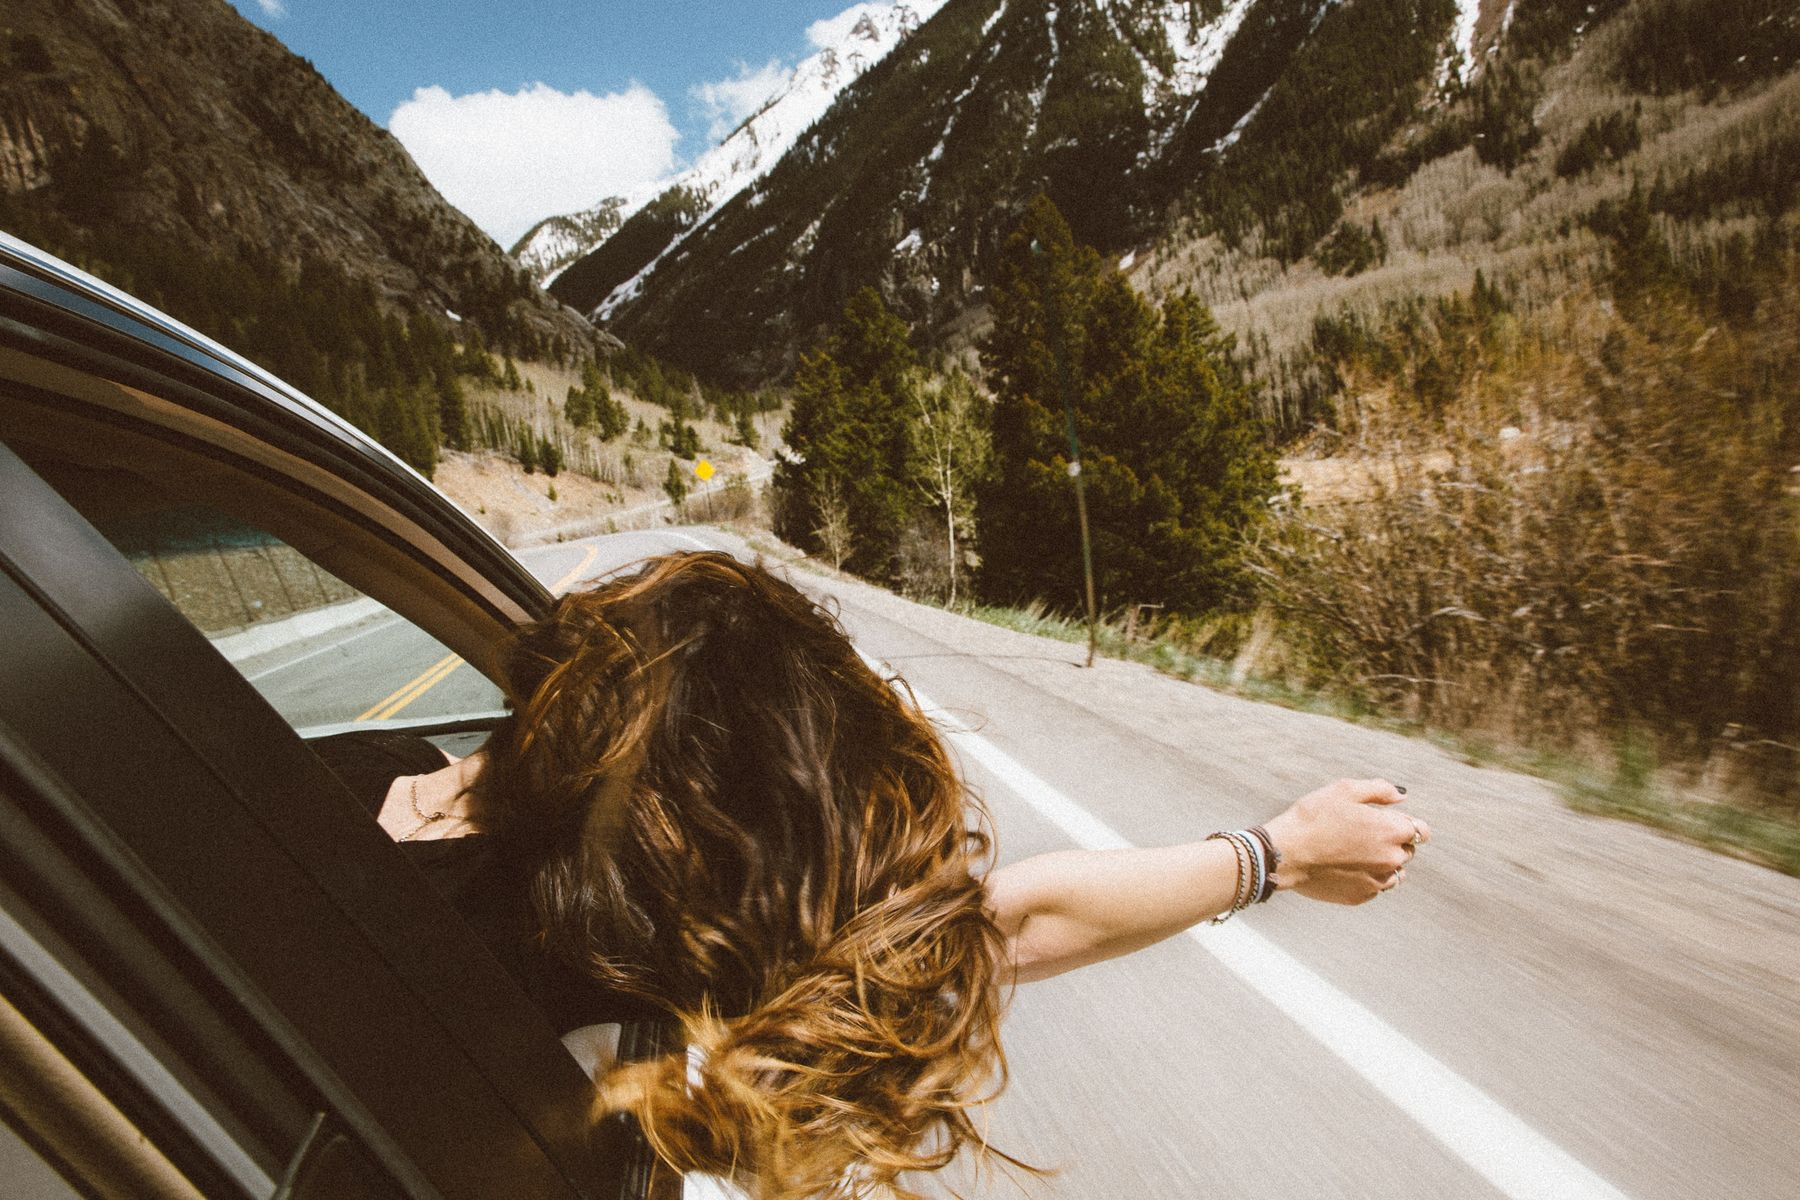 girl hanging outside car window during road trip